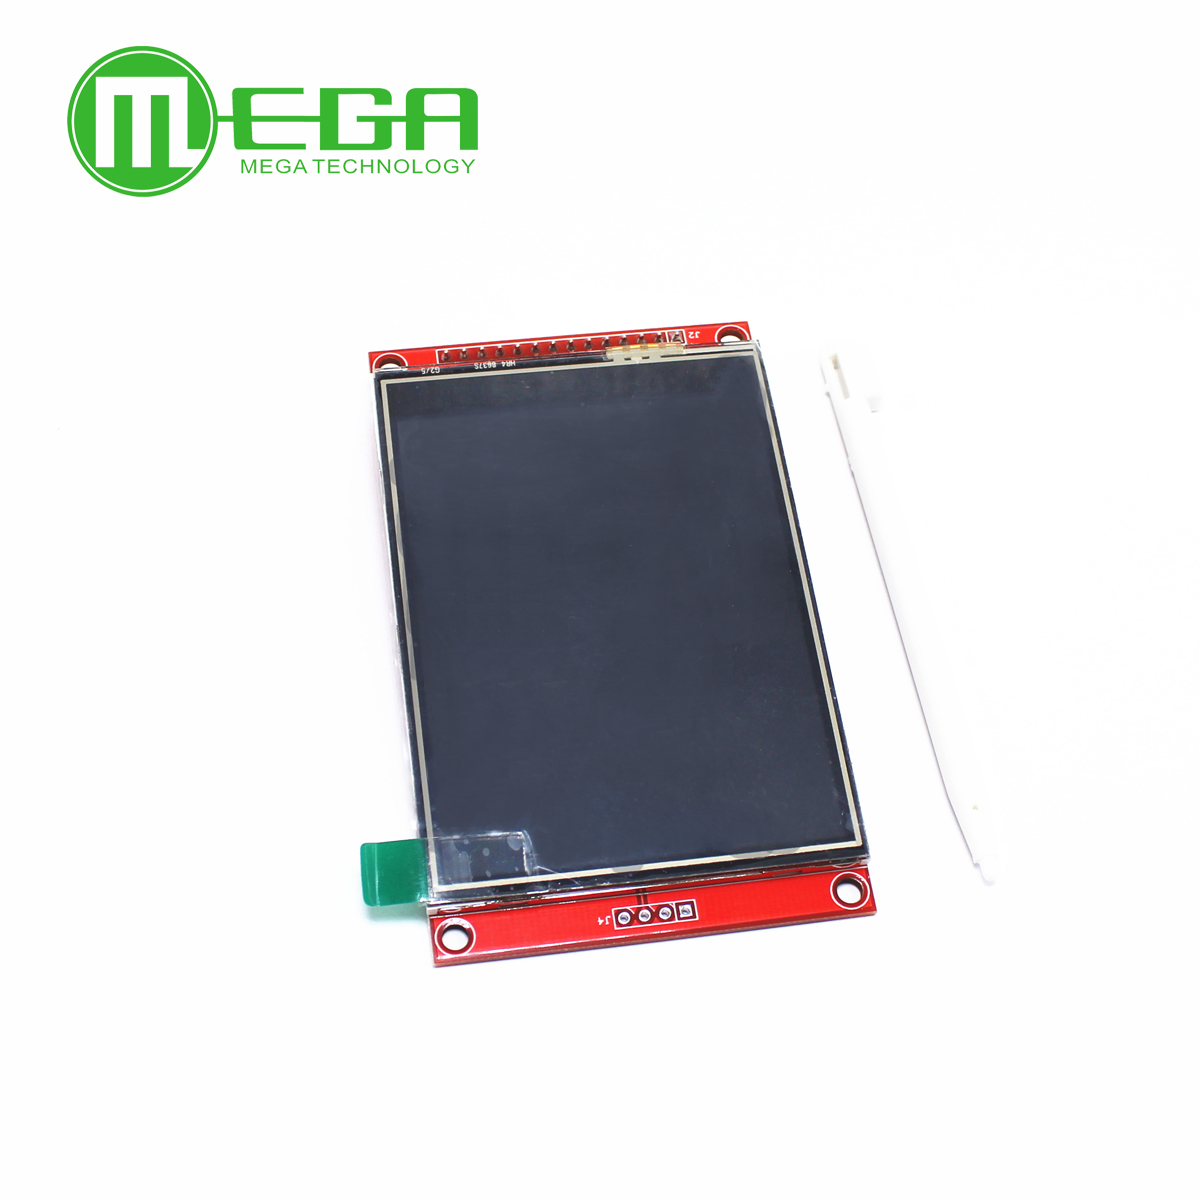 New 3.2 Inch 320*240 SPI Serial TFT LCD Module Display Screen With Touch Panel Driver IC ILI9341 For Arduino MCU